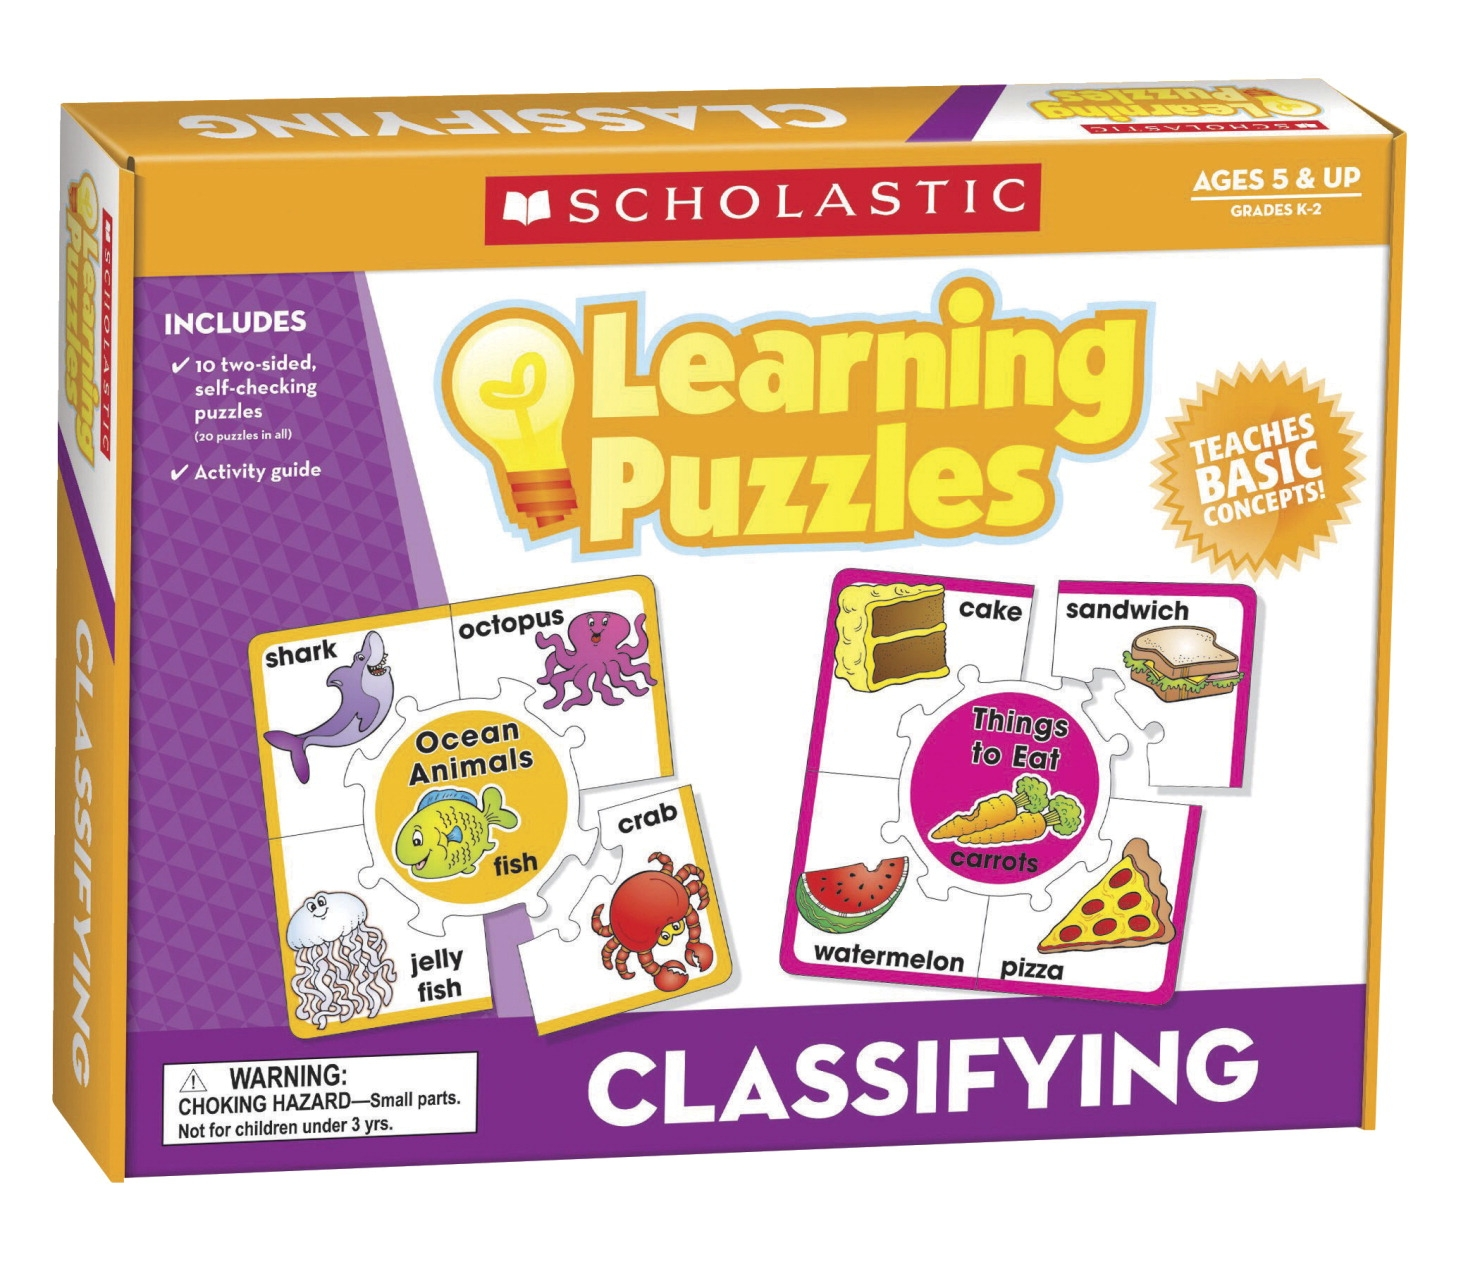 Toys Ride Ons - 086282 - Scholastic Hands-on Learning Classifying Puzzles 086282